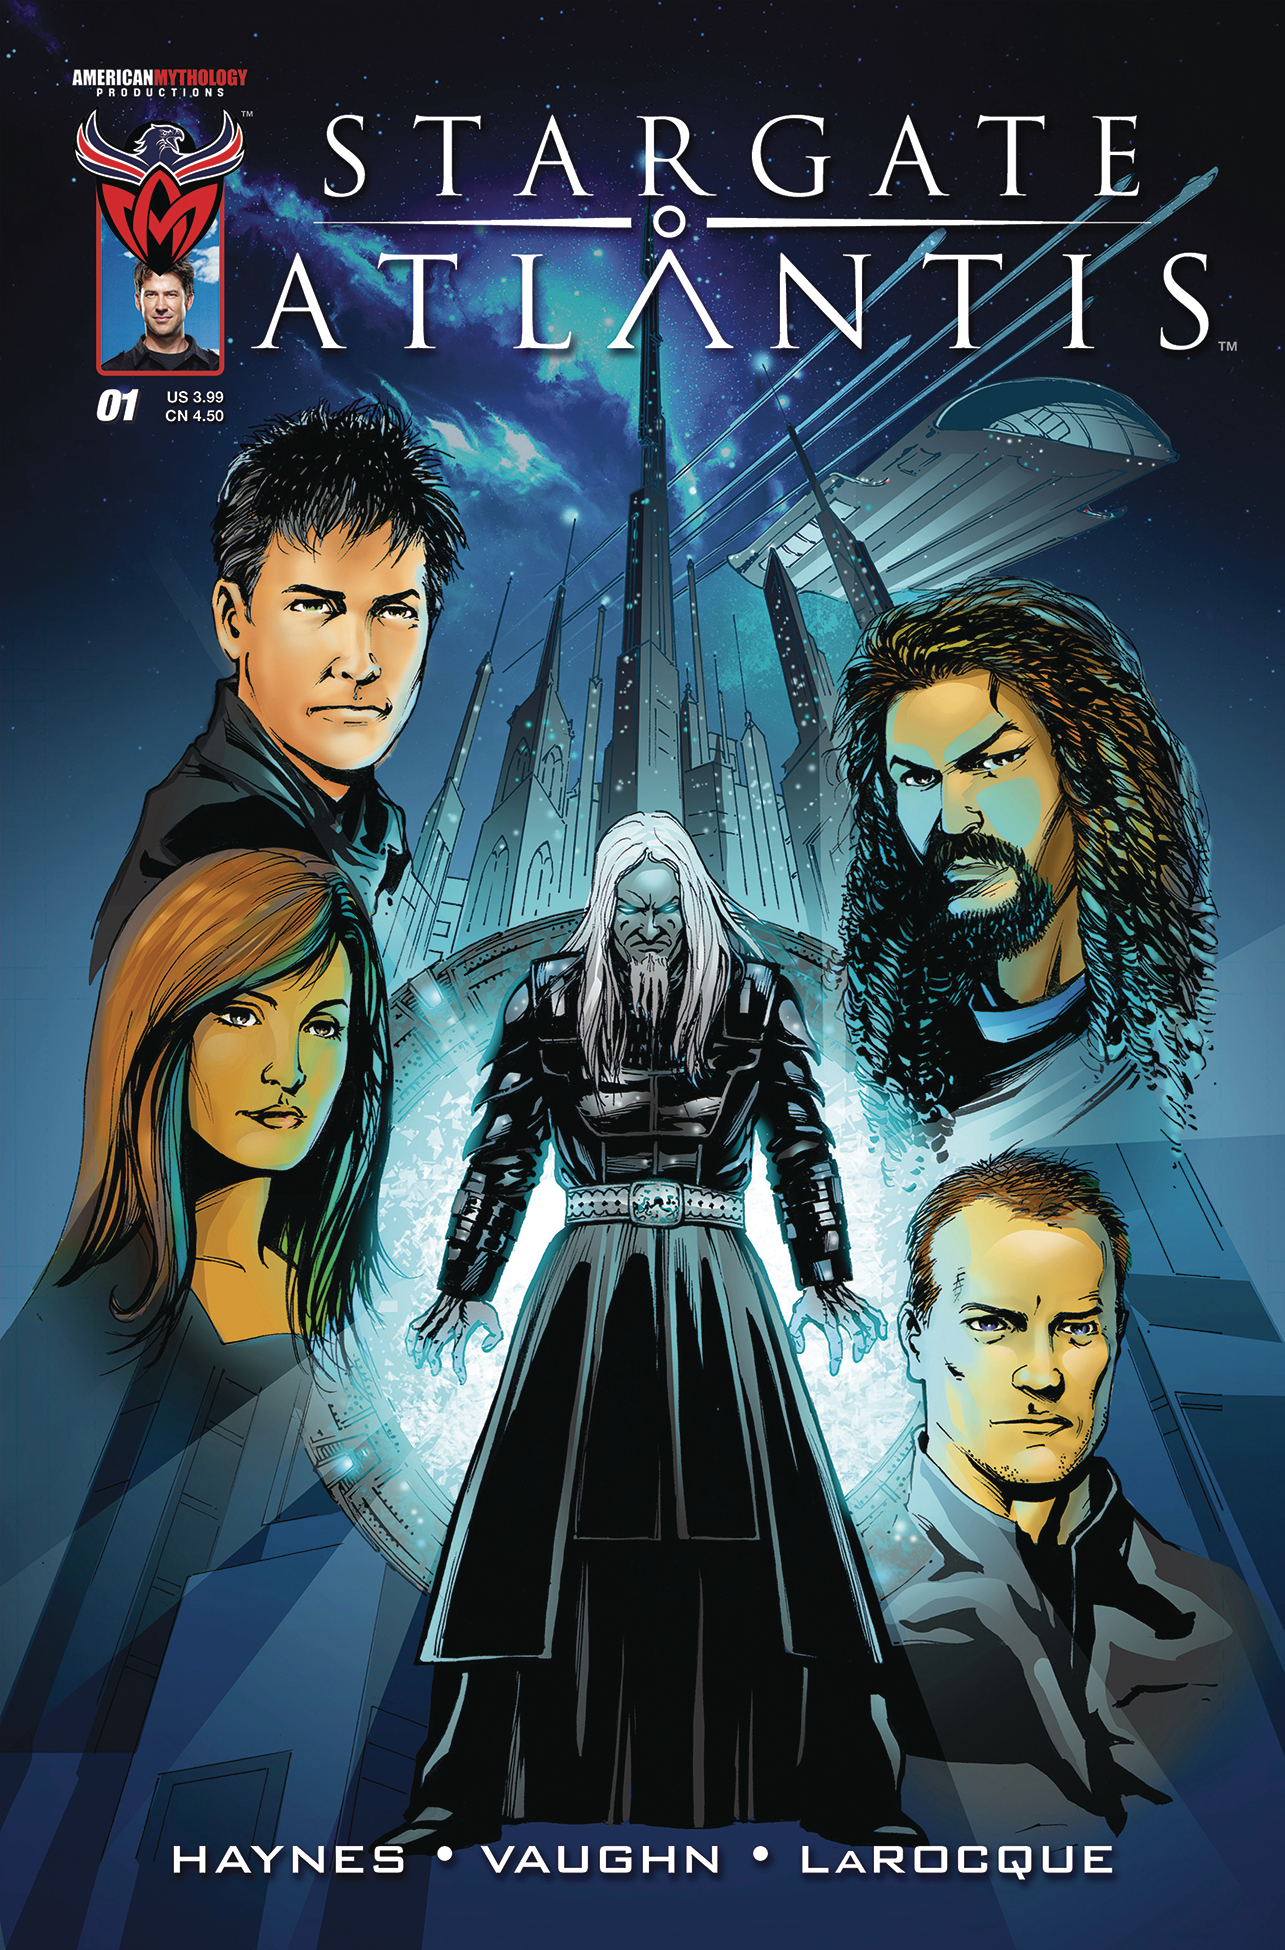 STARGATE ATLANTIS BACK TO PEGASUS #1 MAIN CVR (O/A)